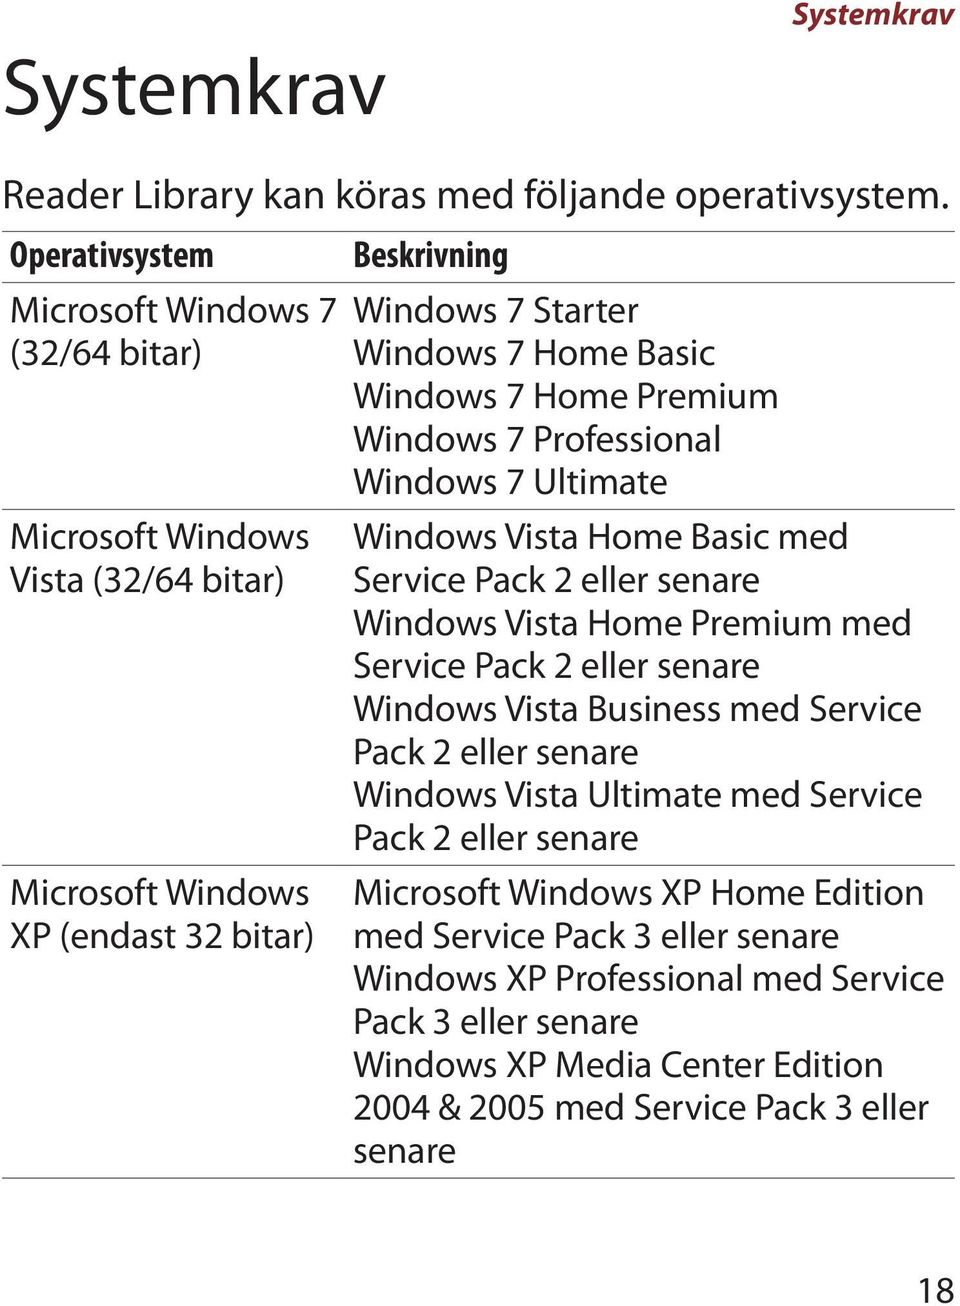 7 Home Premium Windows 7 Professional Windows 7 Ultimate Windows Vista Home Basic med Service Pack 2 eller senare Windows Vista Home Premium med Service Pack 2 eller senare Windows